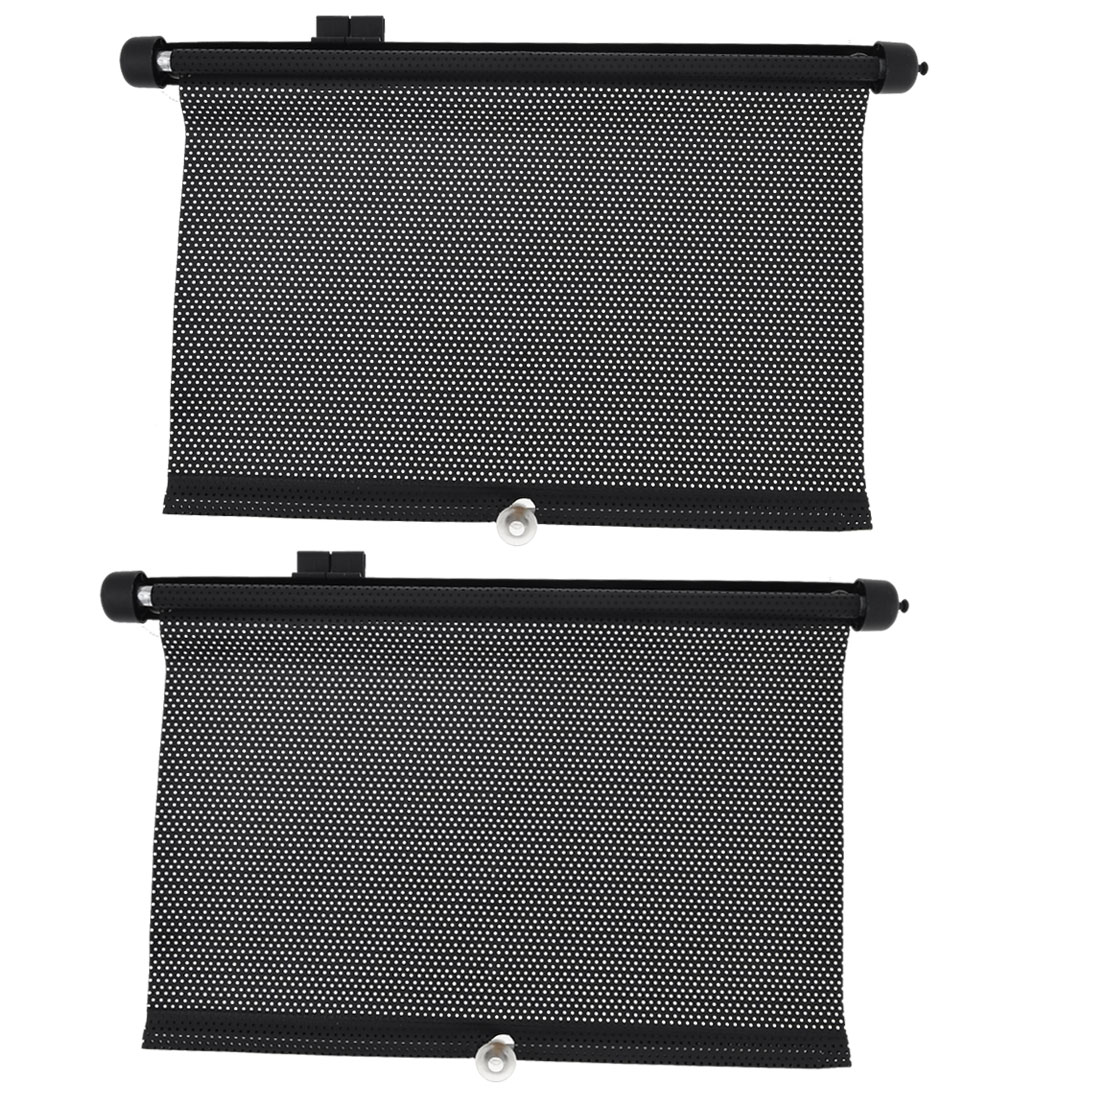 2 x Car Auto Rear Window Windshield Black Sun Shade Visor Sunshade 46cm x 35cm